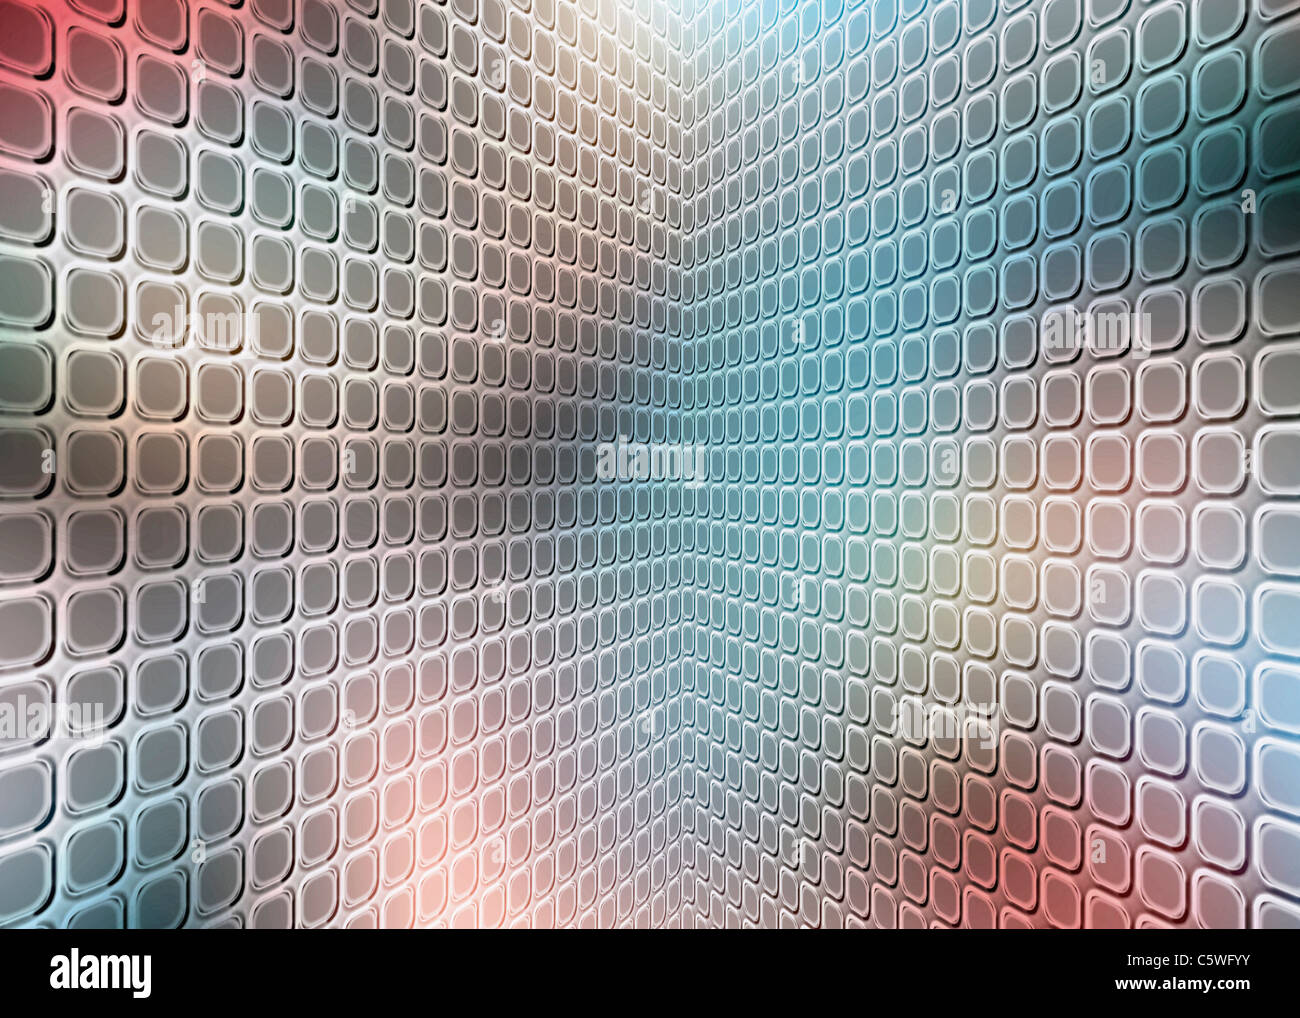 Perspective tile, full frame - Stock Image